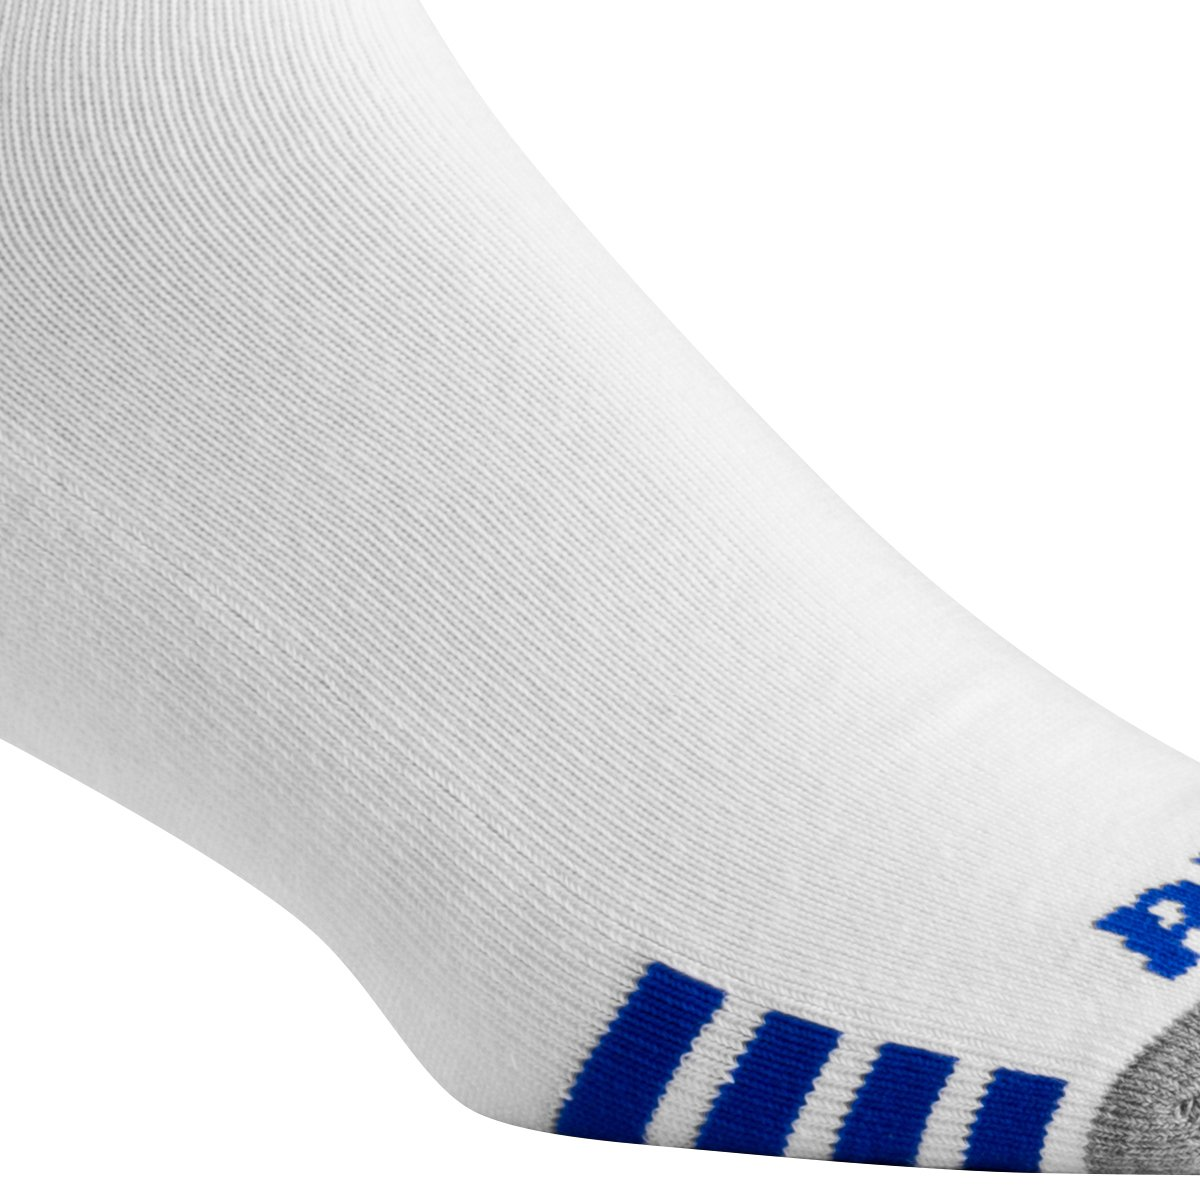 Tennis Prince Mens Low Cut Performance Athletic Socks for Running 6 Pair Pack and Casual Use